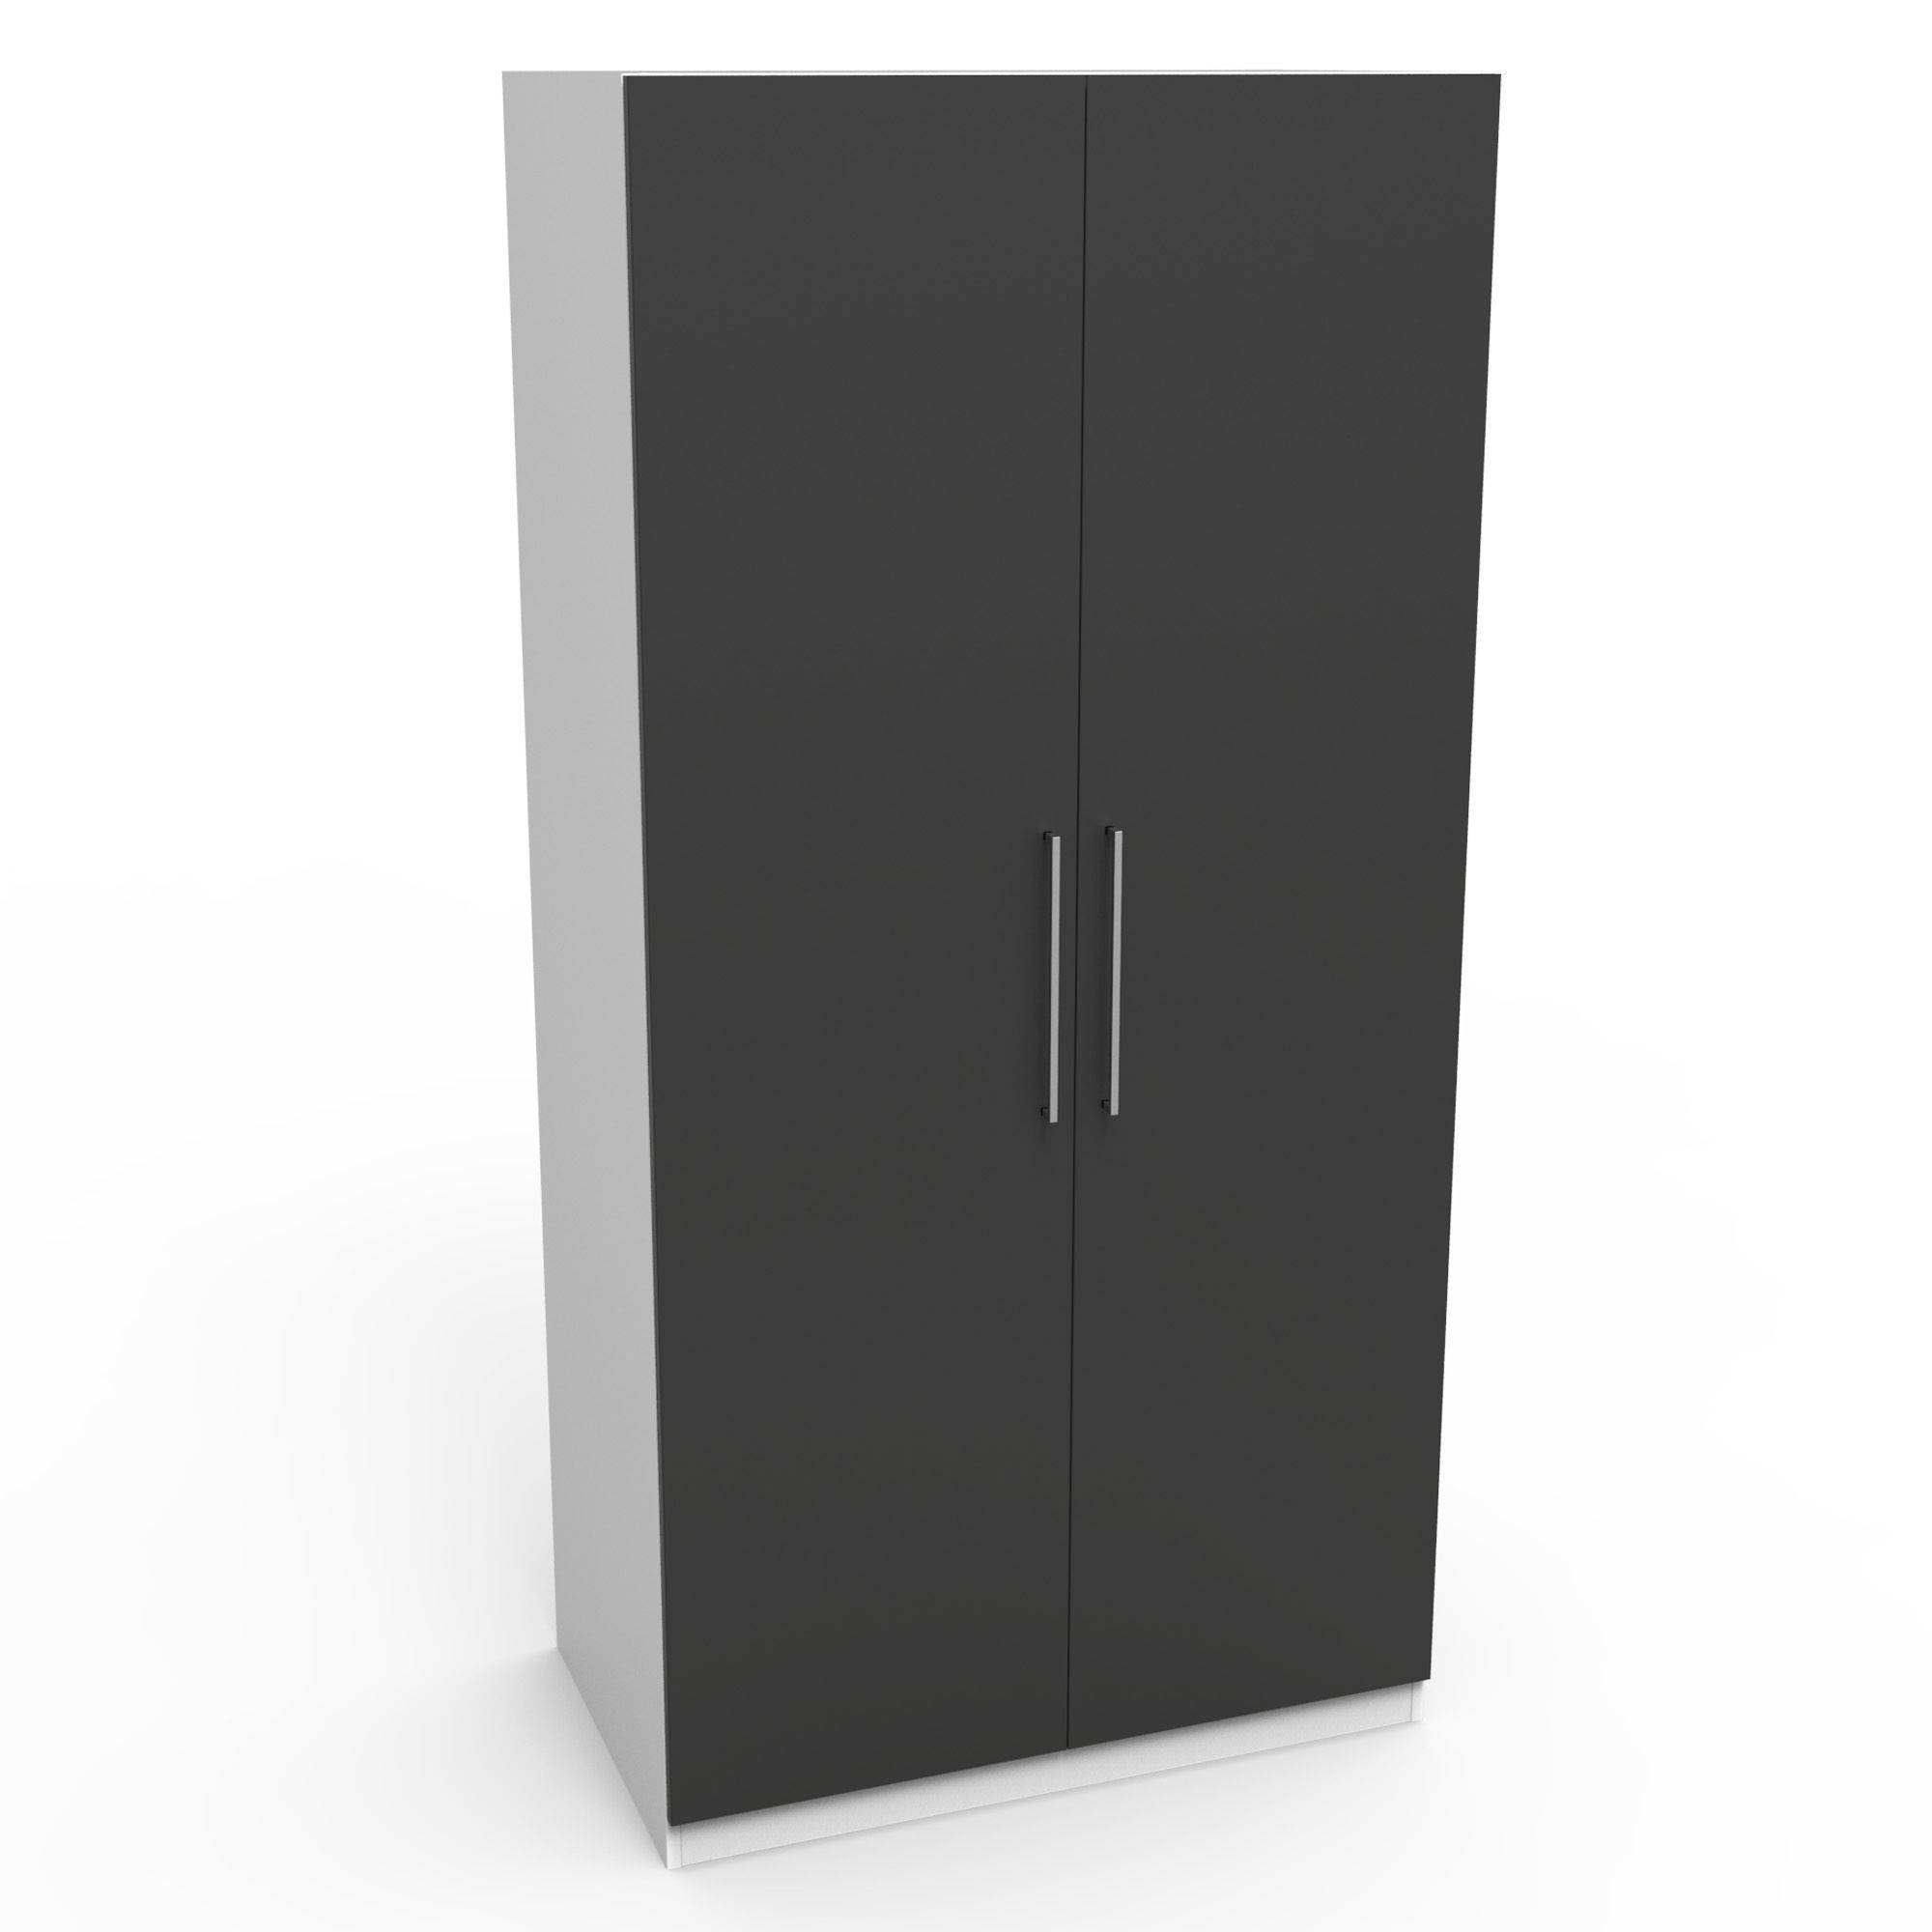 doors and dee wardrobe grey pin stone handles walnut interior with